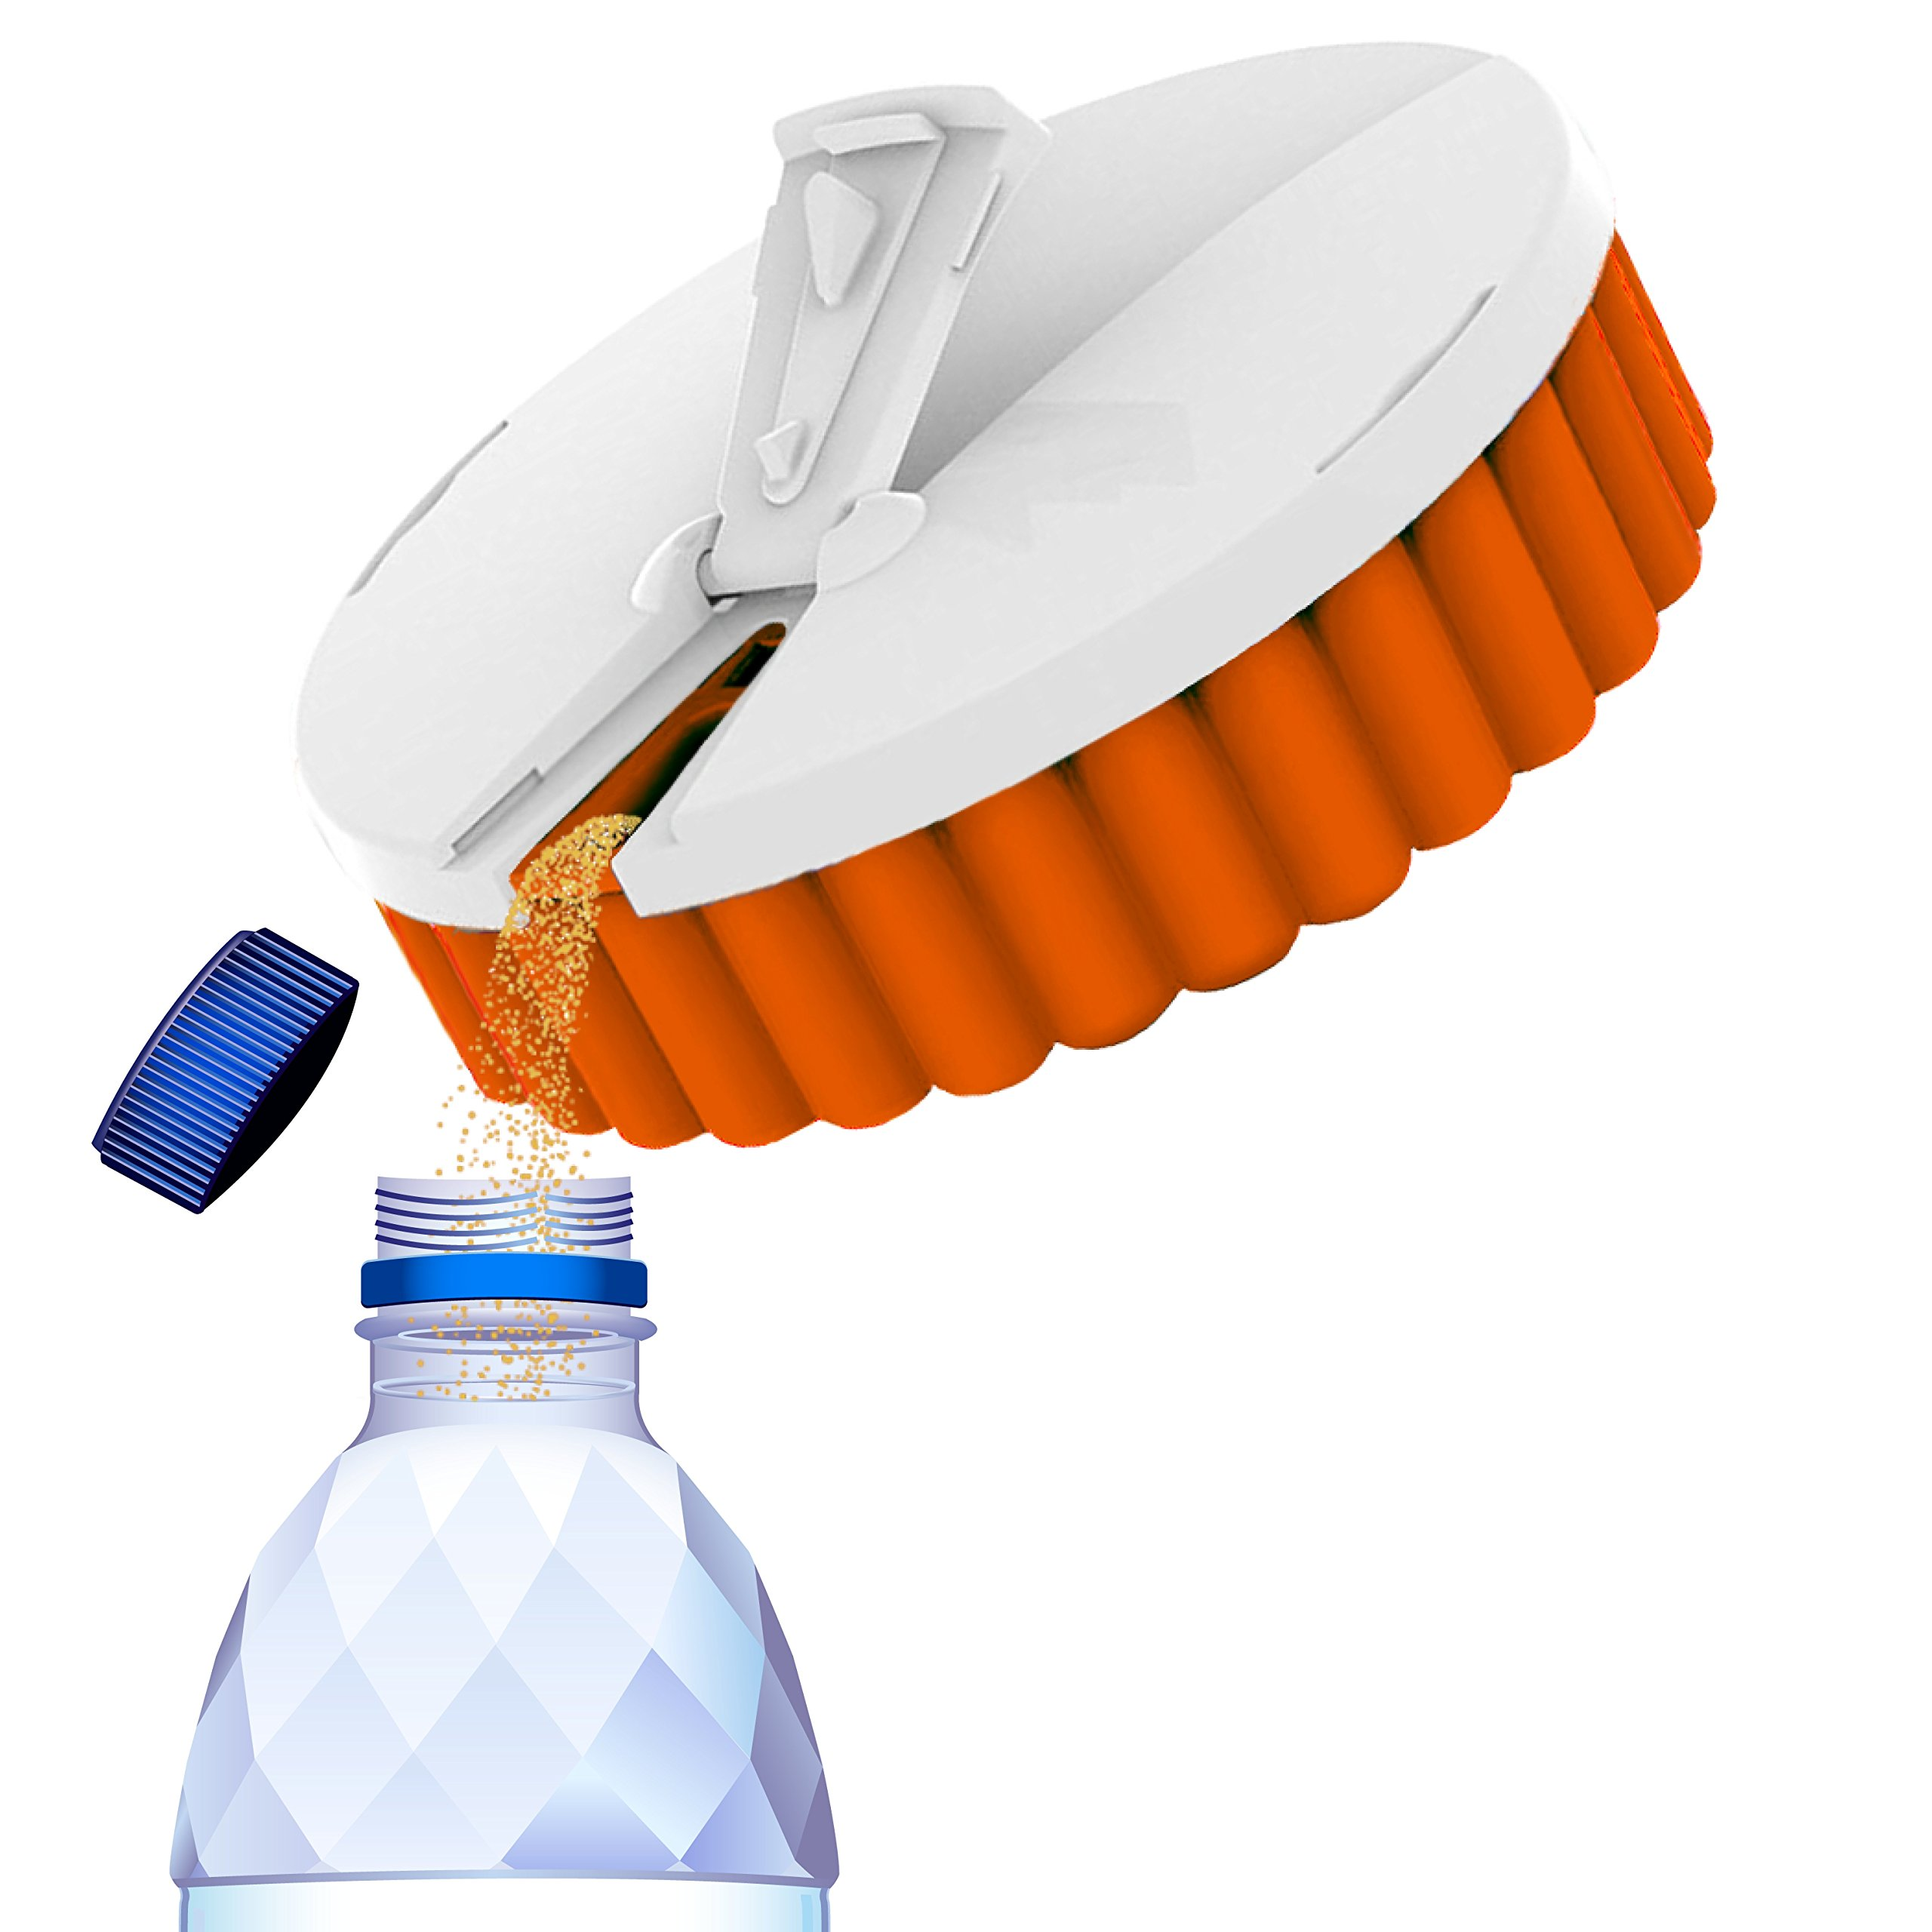 Tespo-Go Vitamin Dispenser | White | Attaches To Any Tespo Pod | Protects, Pierces and Dispenses Individual Servings From Tespo Pods | Non-BPA Recyclable Plastic